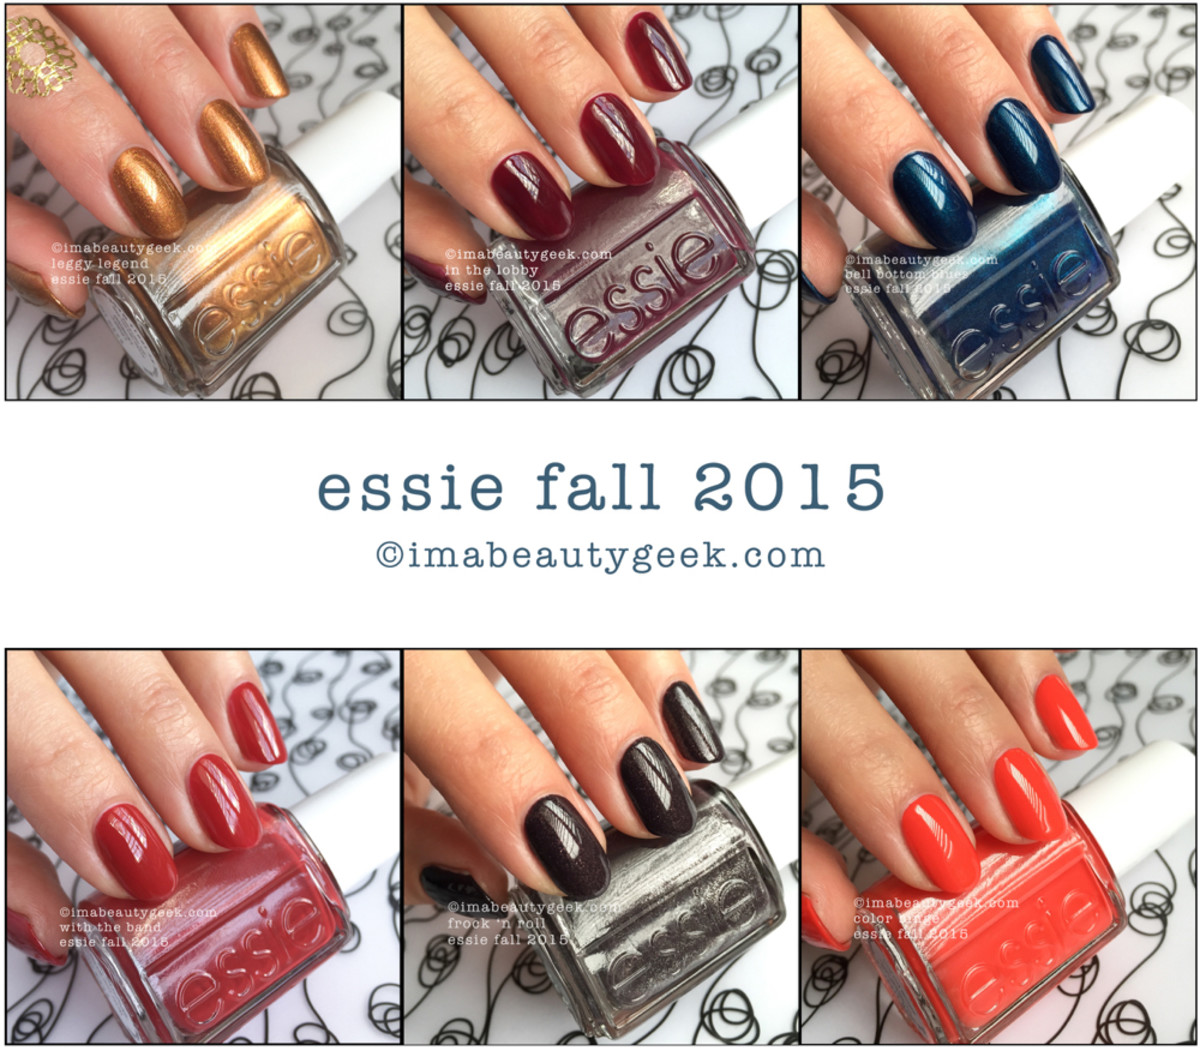 ESSIE FALL 2015: YOUR COMPLETE MANIGEEK GUIDE - Beautygeeks